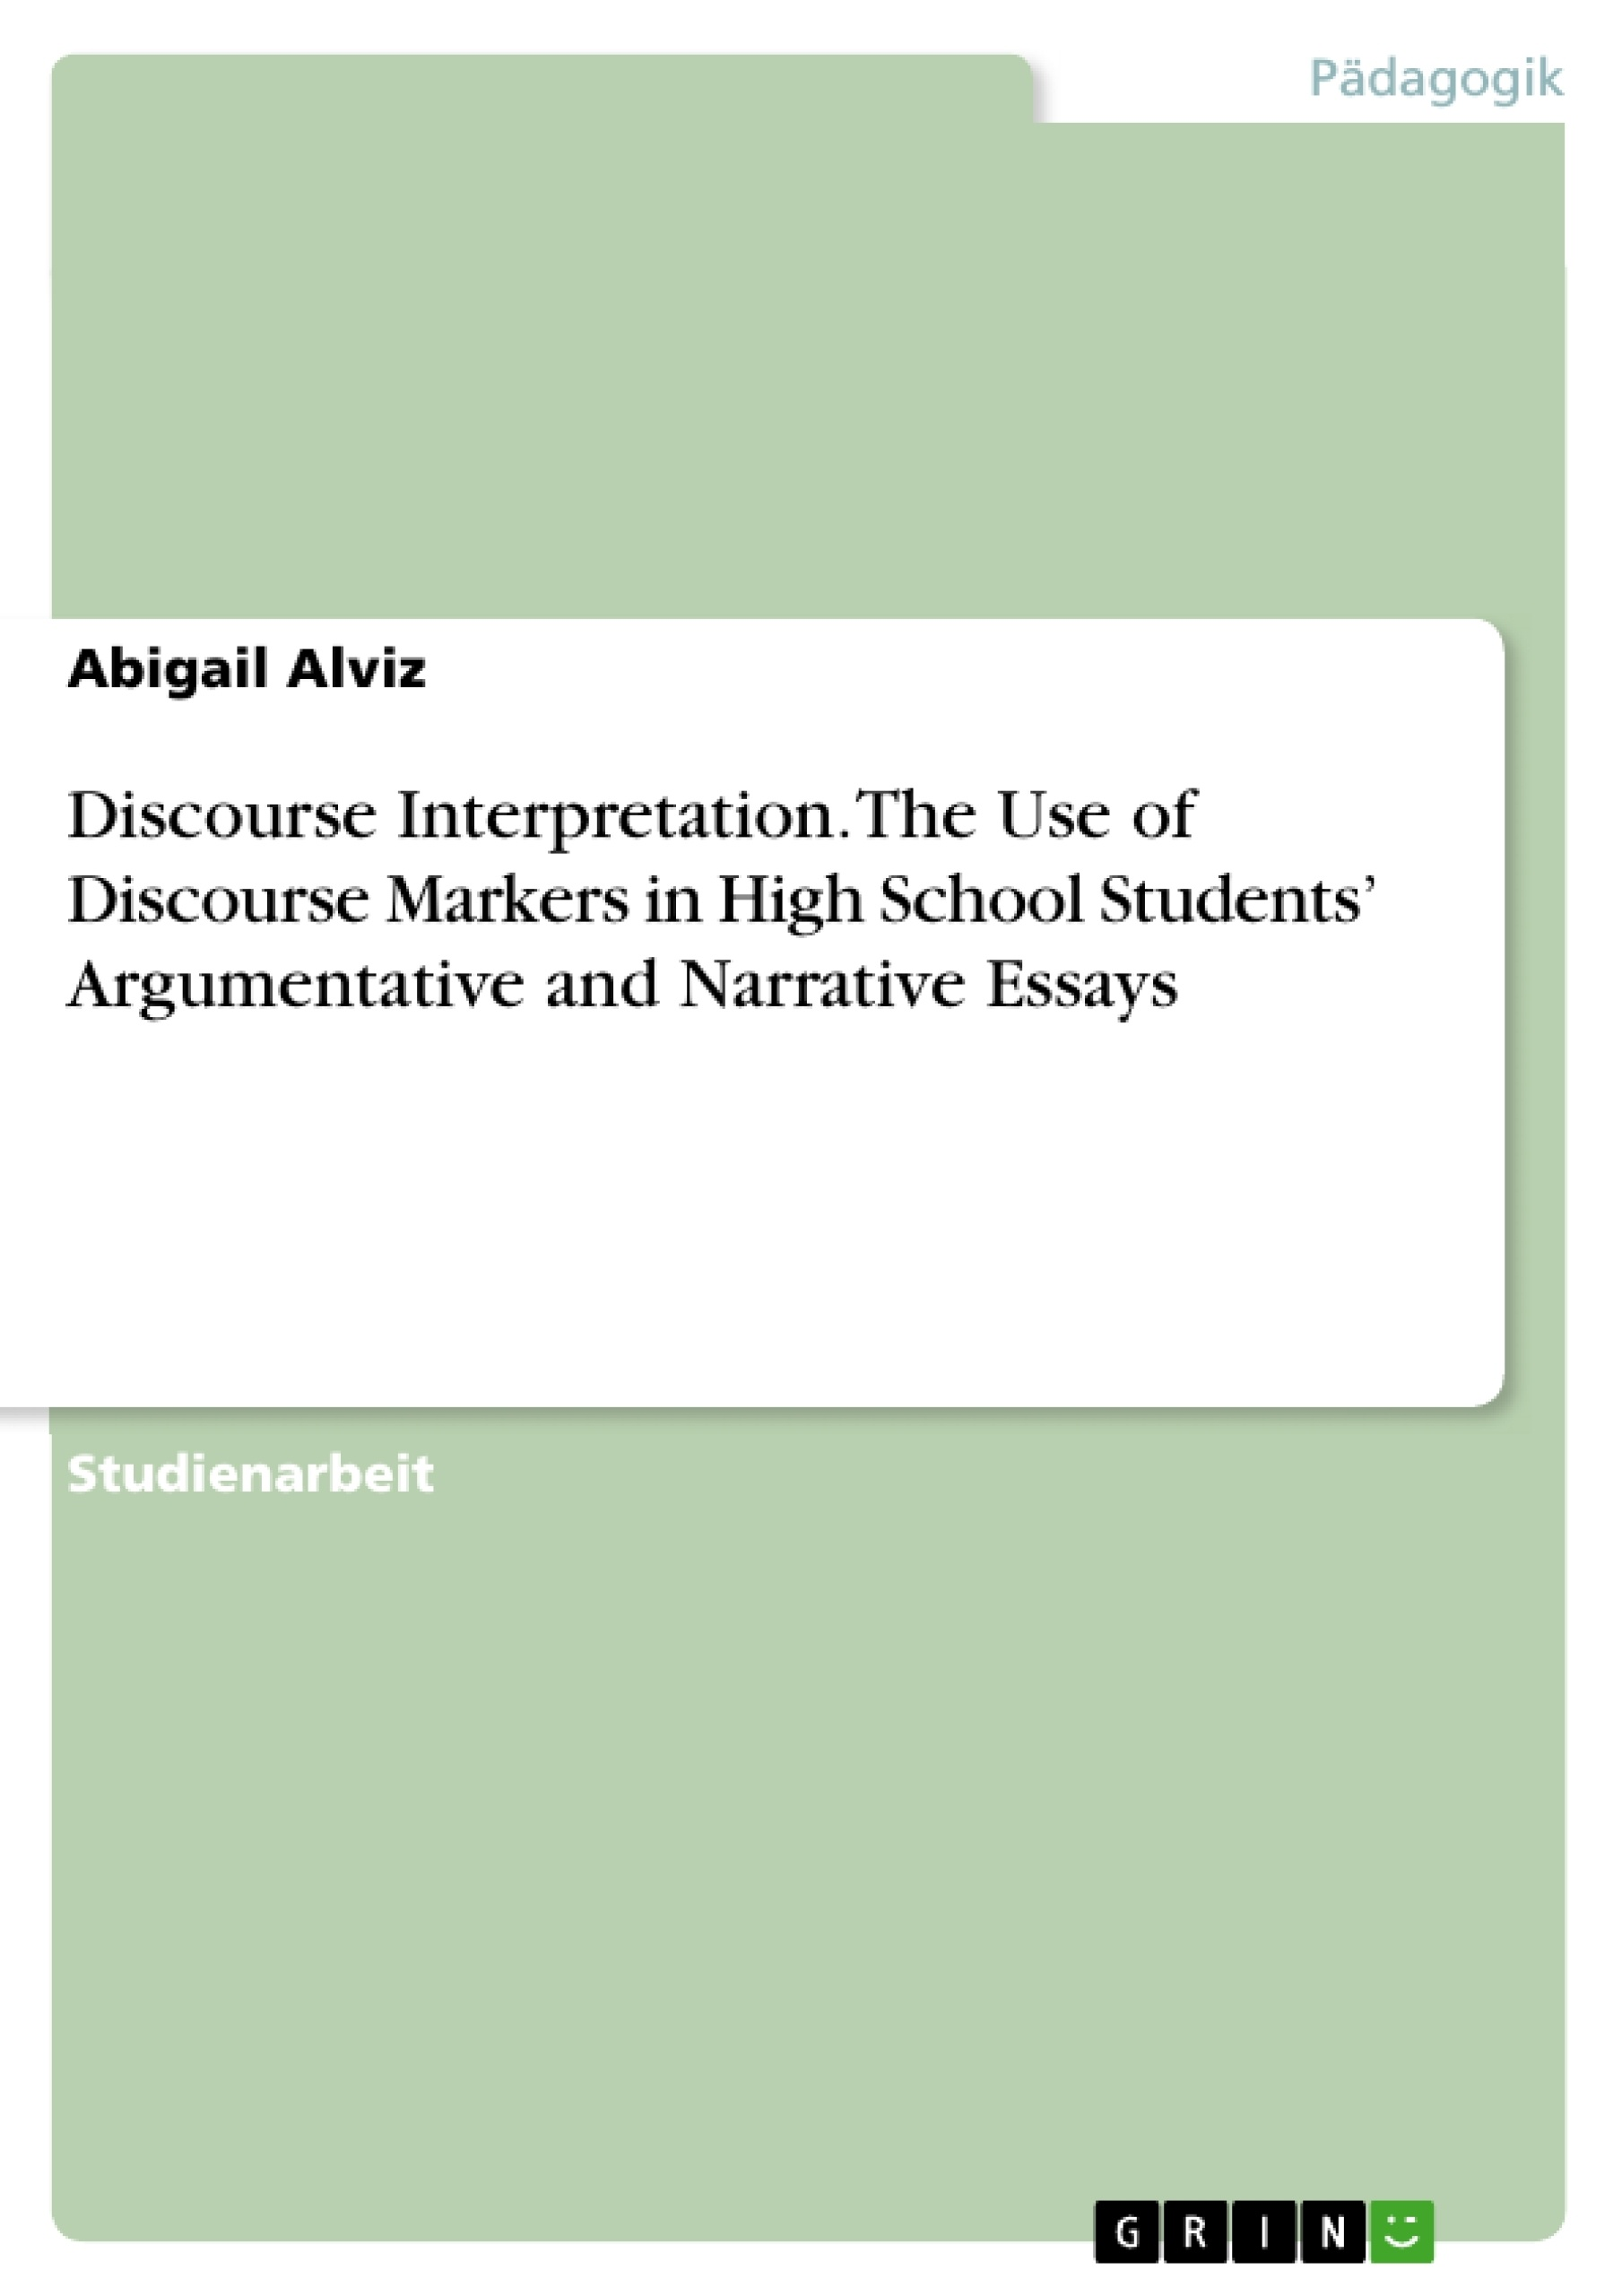 Titel: Discourse Interpretation. The Use of Discourse Markers in High School Students' Argumentative and Narrative Essays